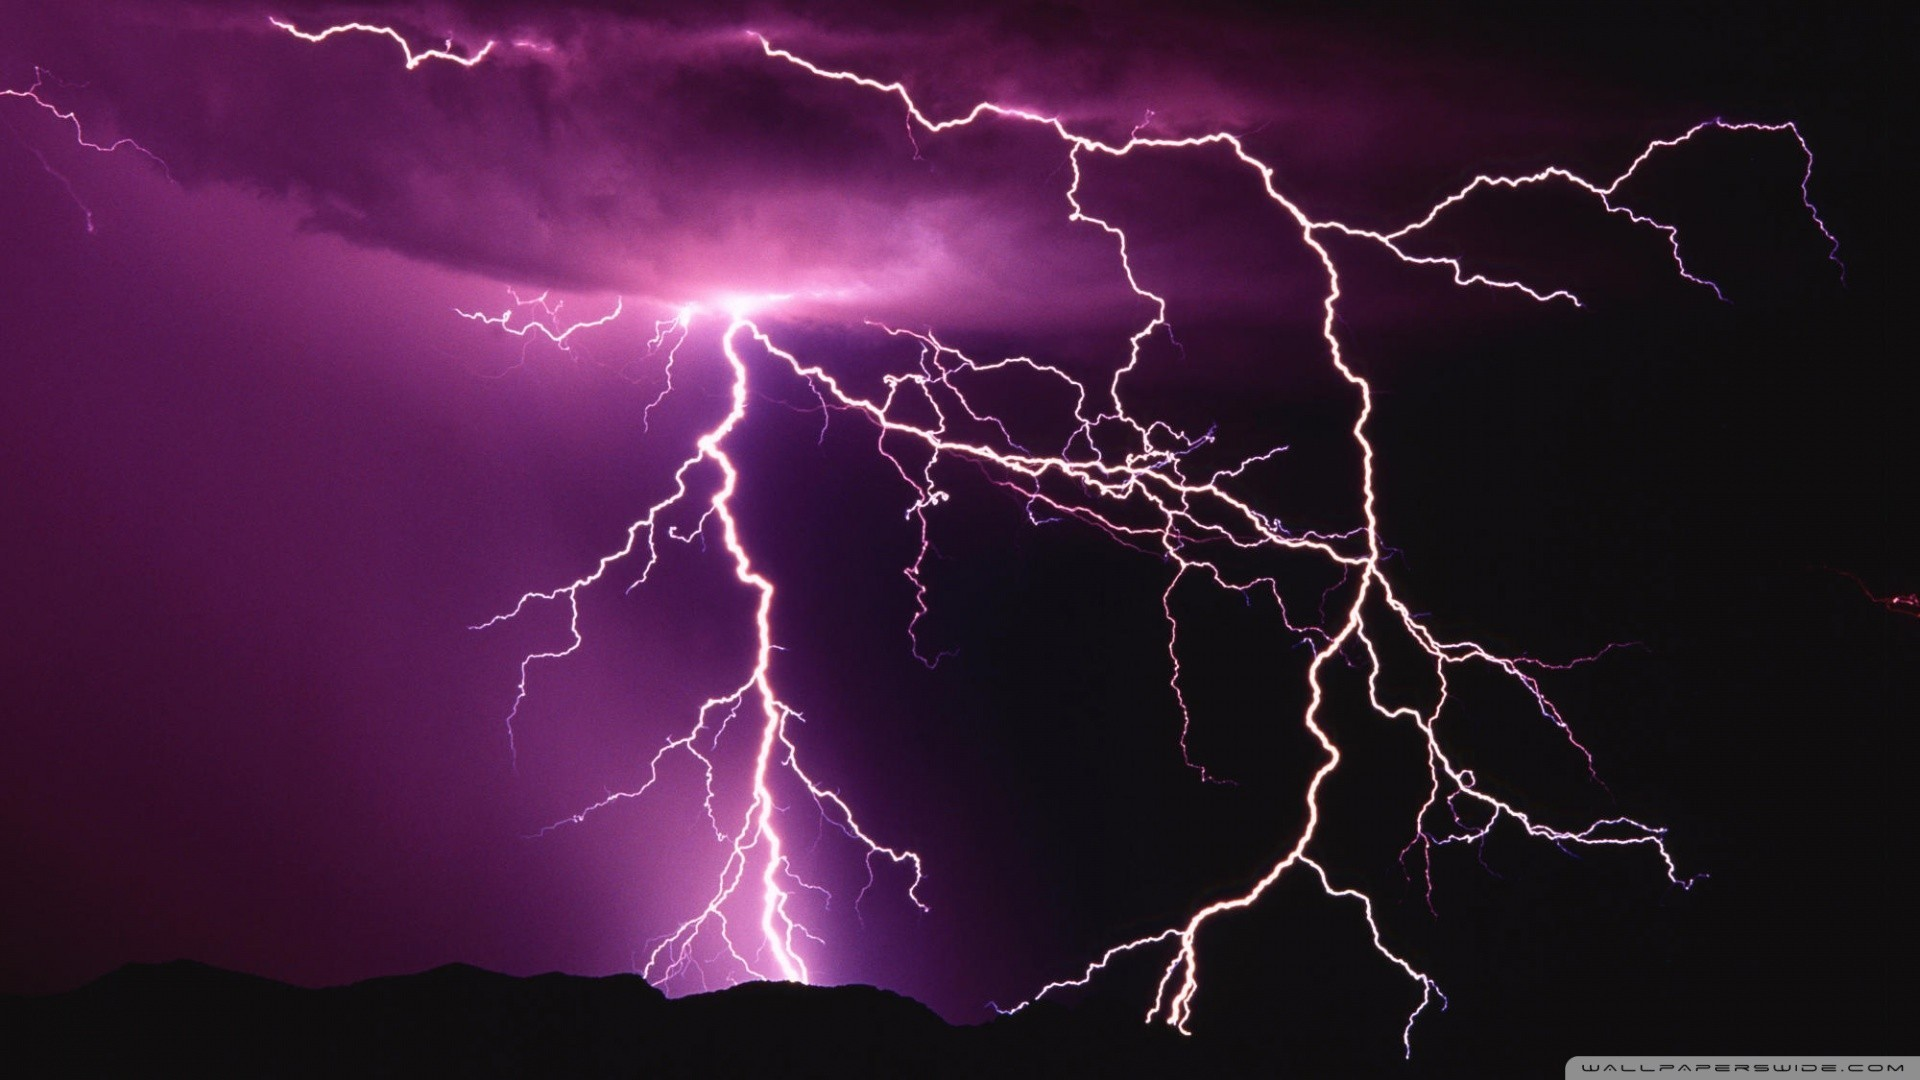 documentary lightning nature night storm wallpaper | allwallpaper.in